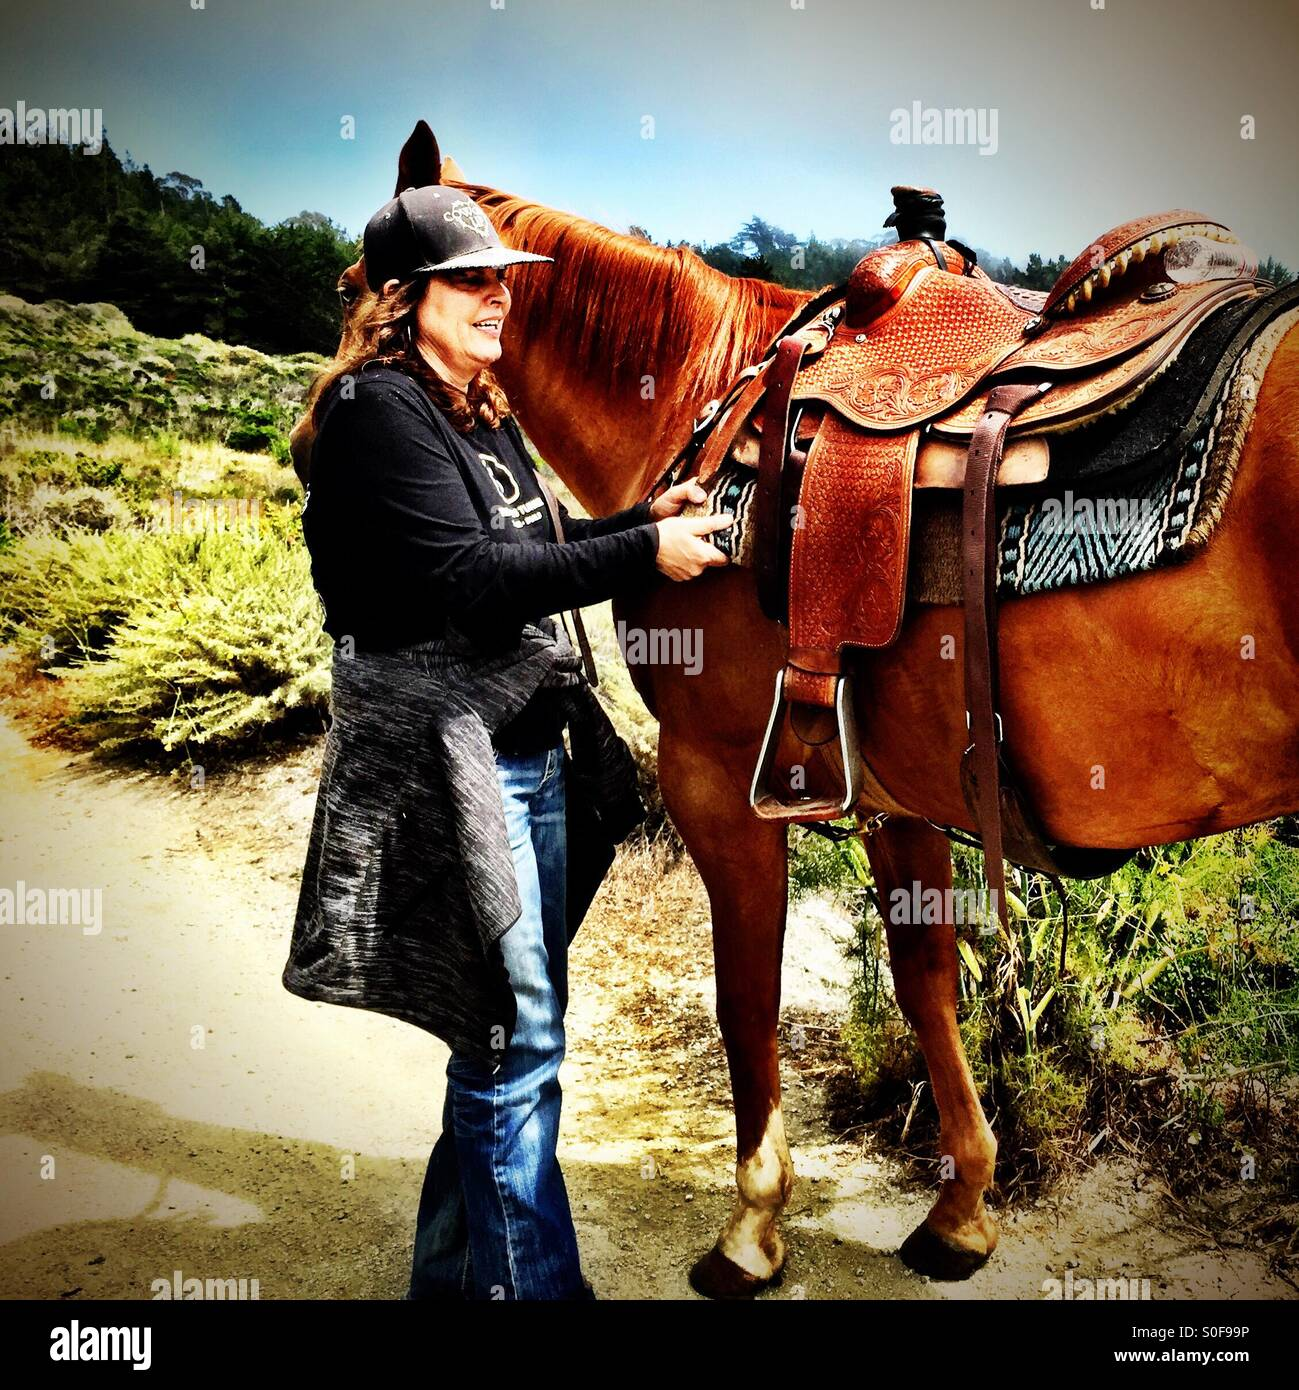 Woman fastening the buckles on her horse's saddle on a fire road, McNee Ranch State Park, California, USA. - Stock Image